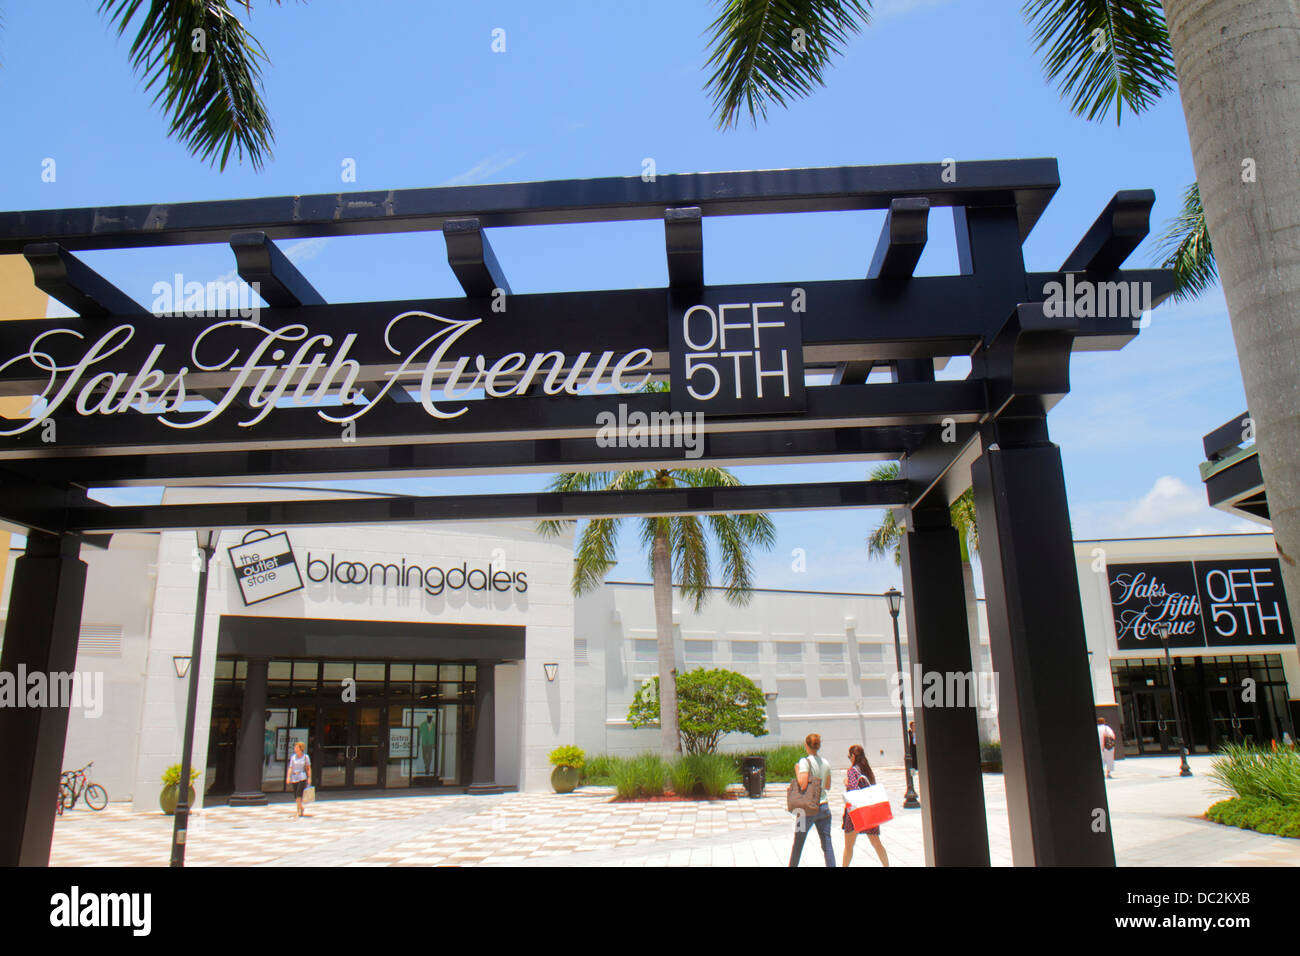 Florida Sunrise Fort Ft. Lauderdale Sawgrass Mills Mall shopping entrance exterior Saks Fifth Avenue Off 5th - Stock Image